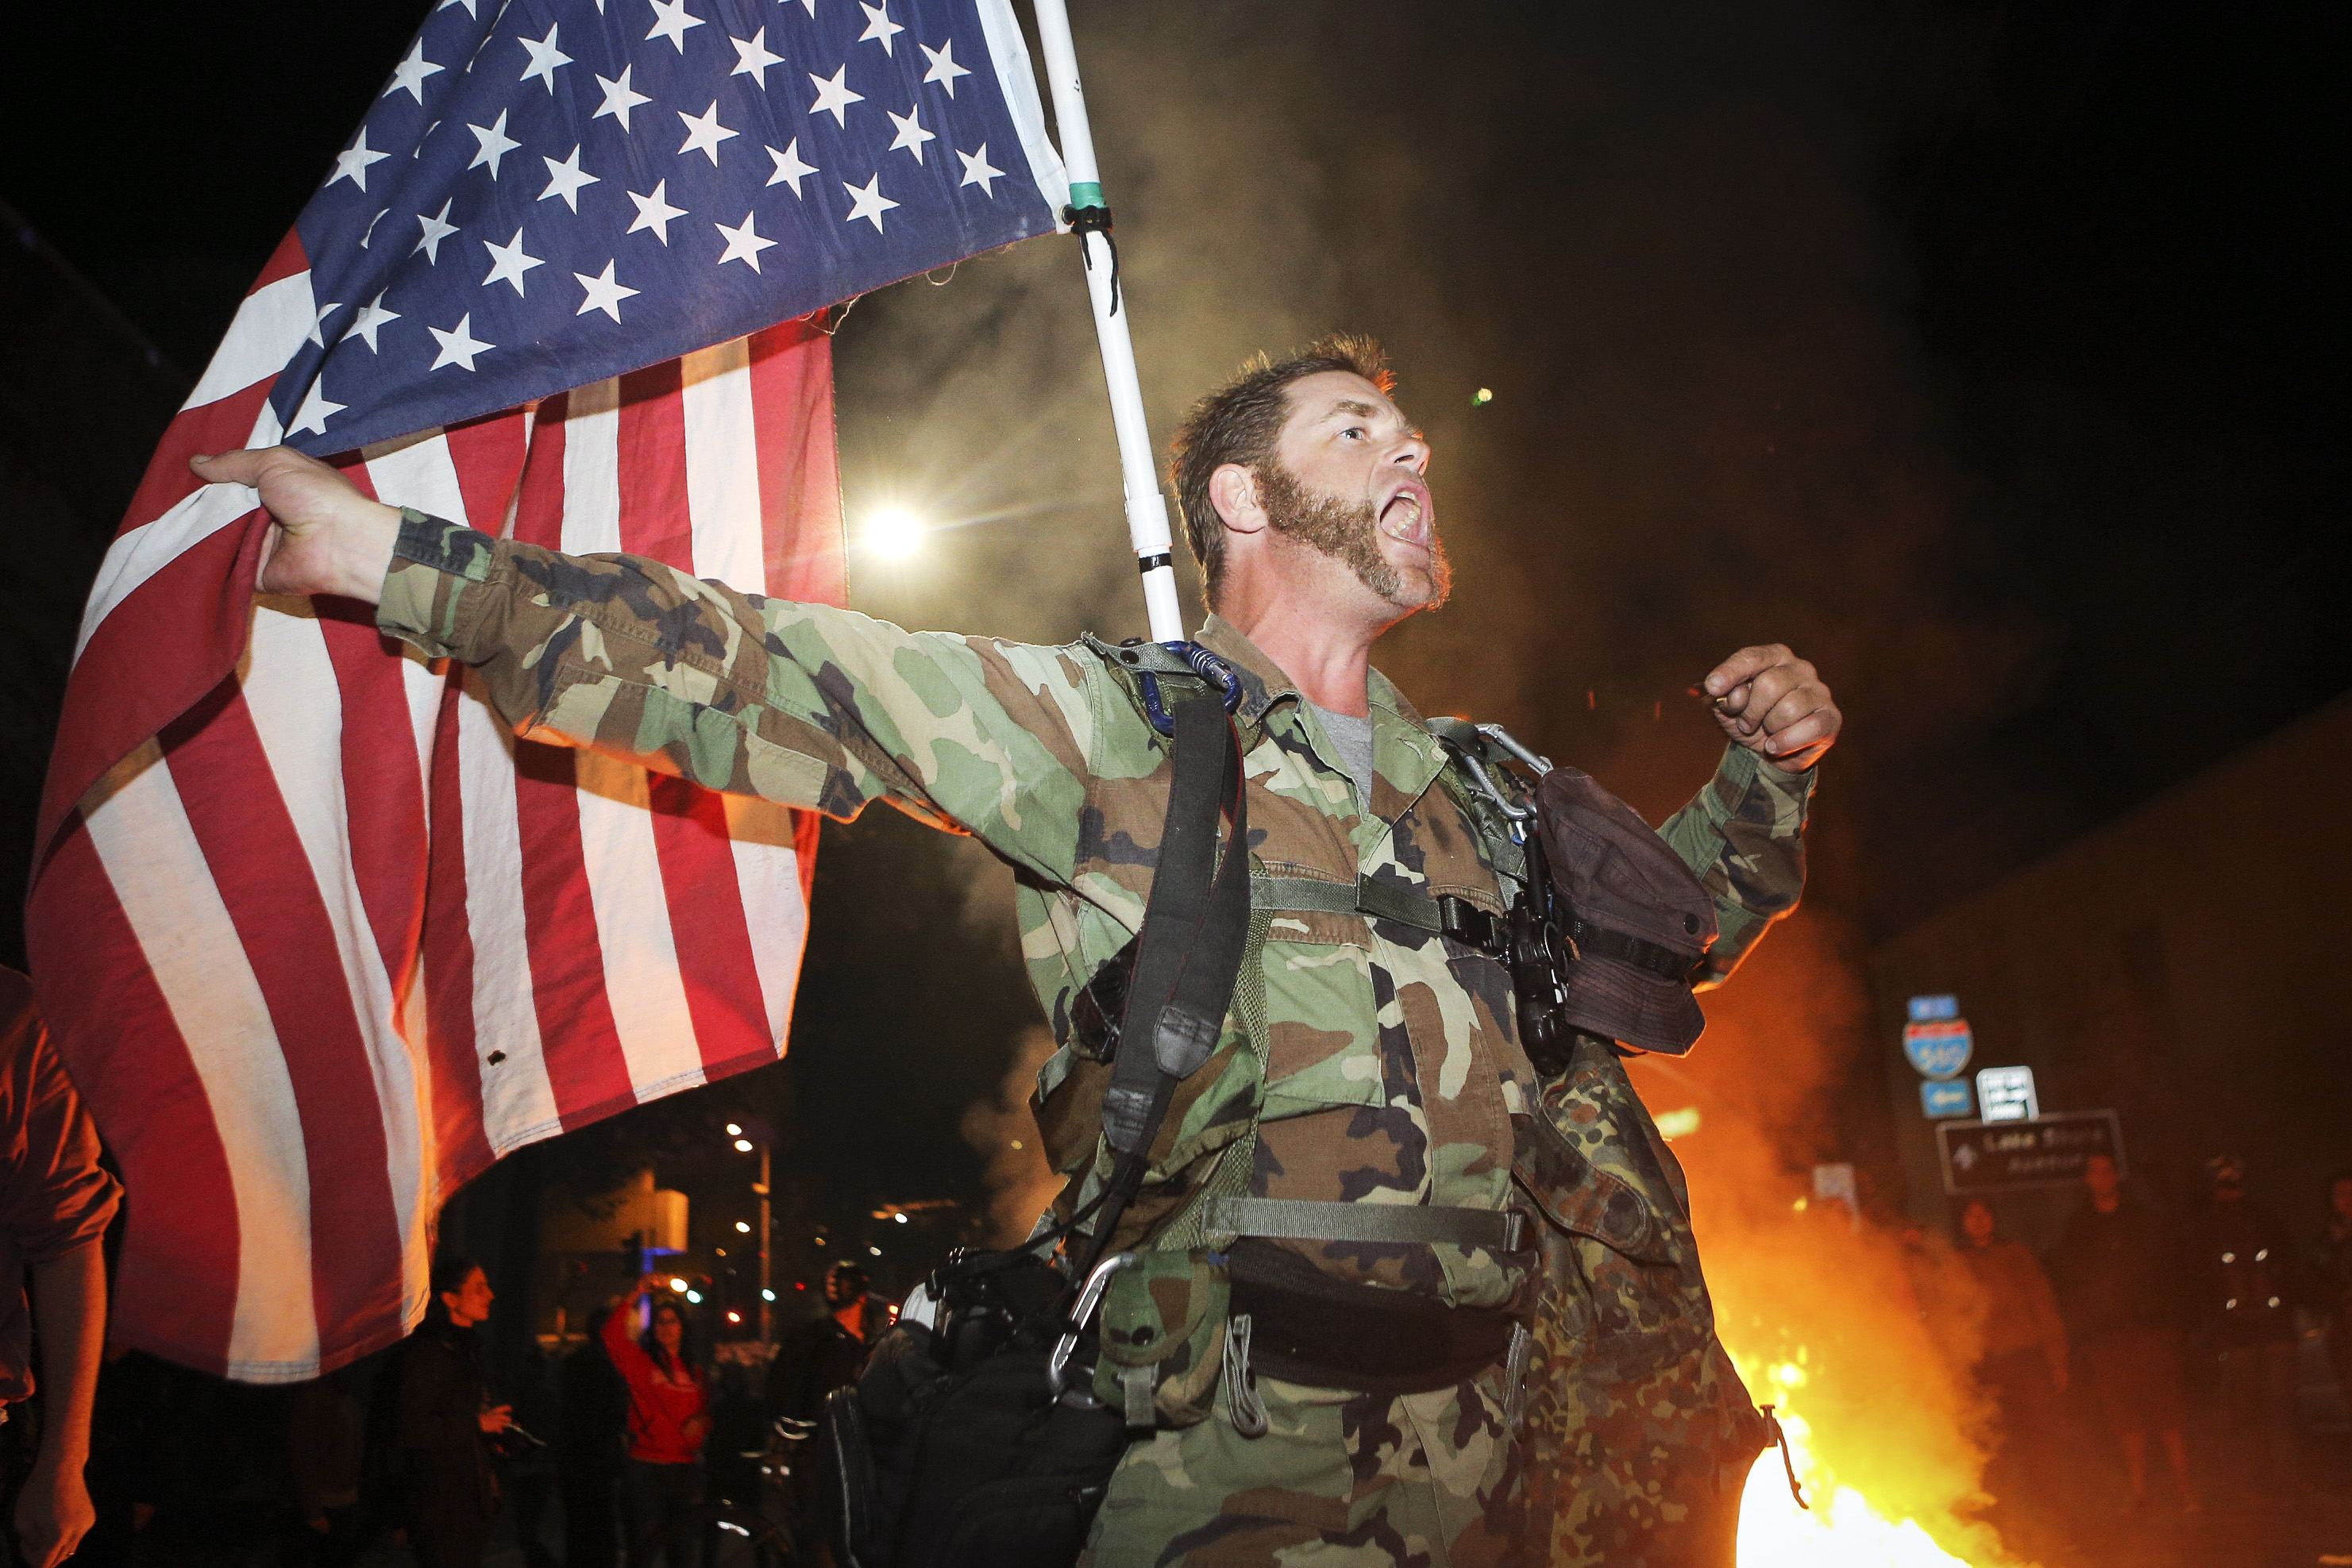 arrests made in ferguson as unrest explodes enca